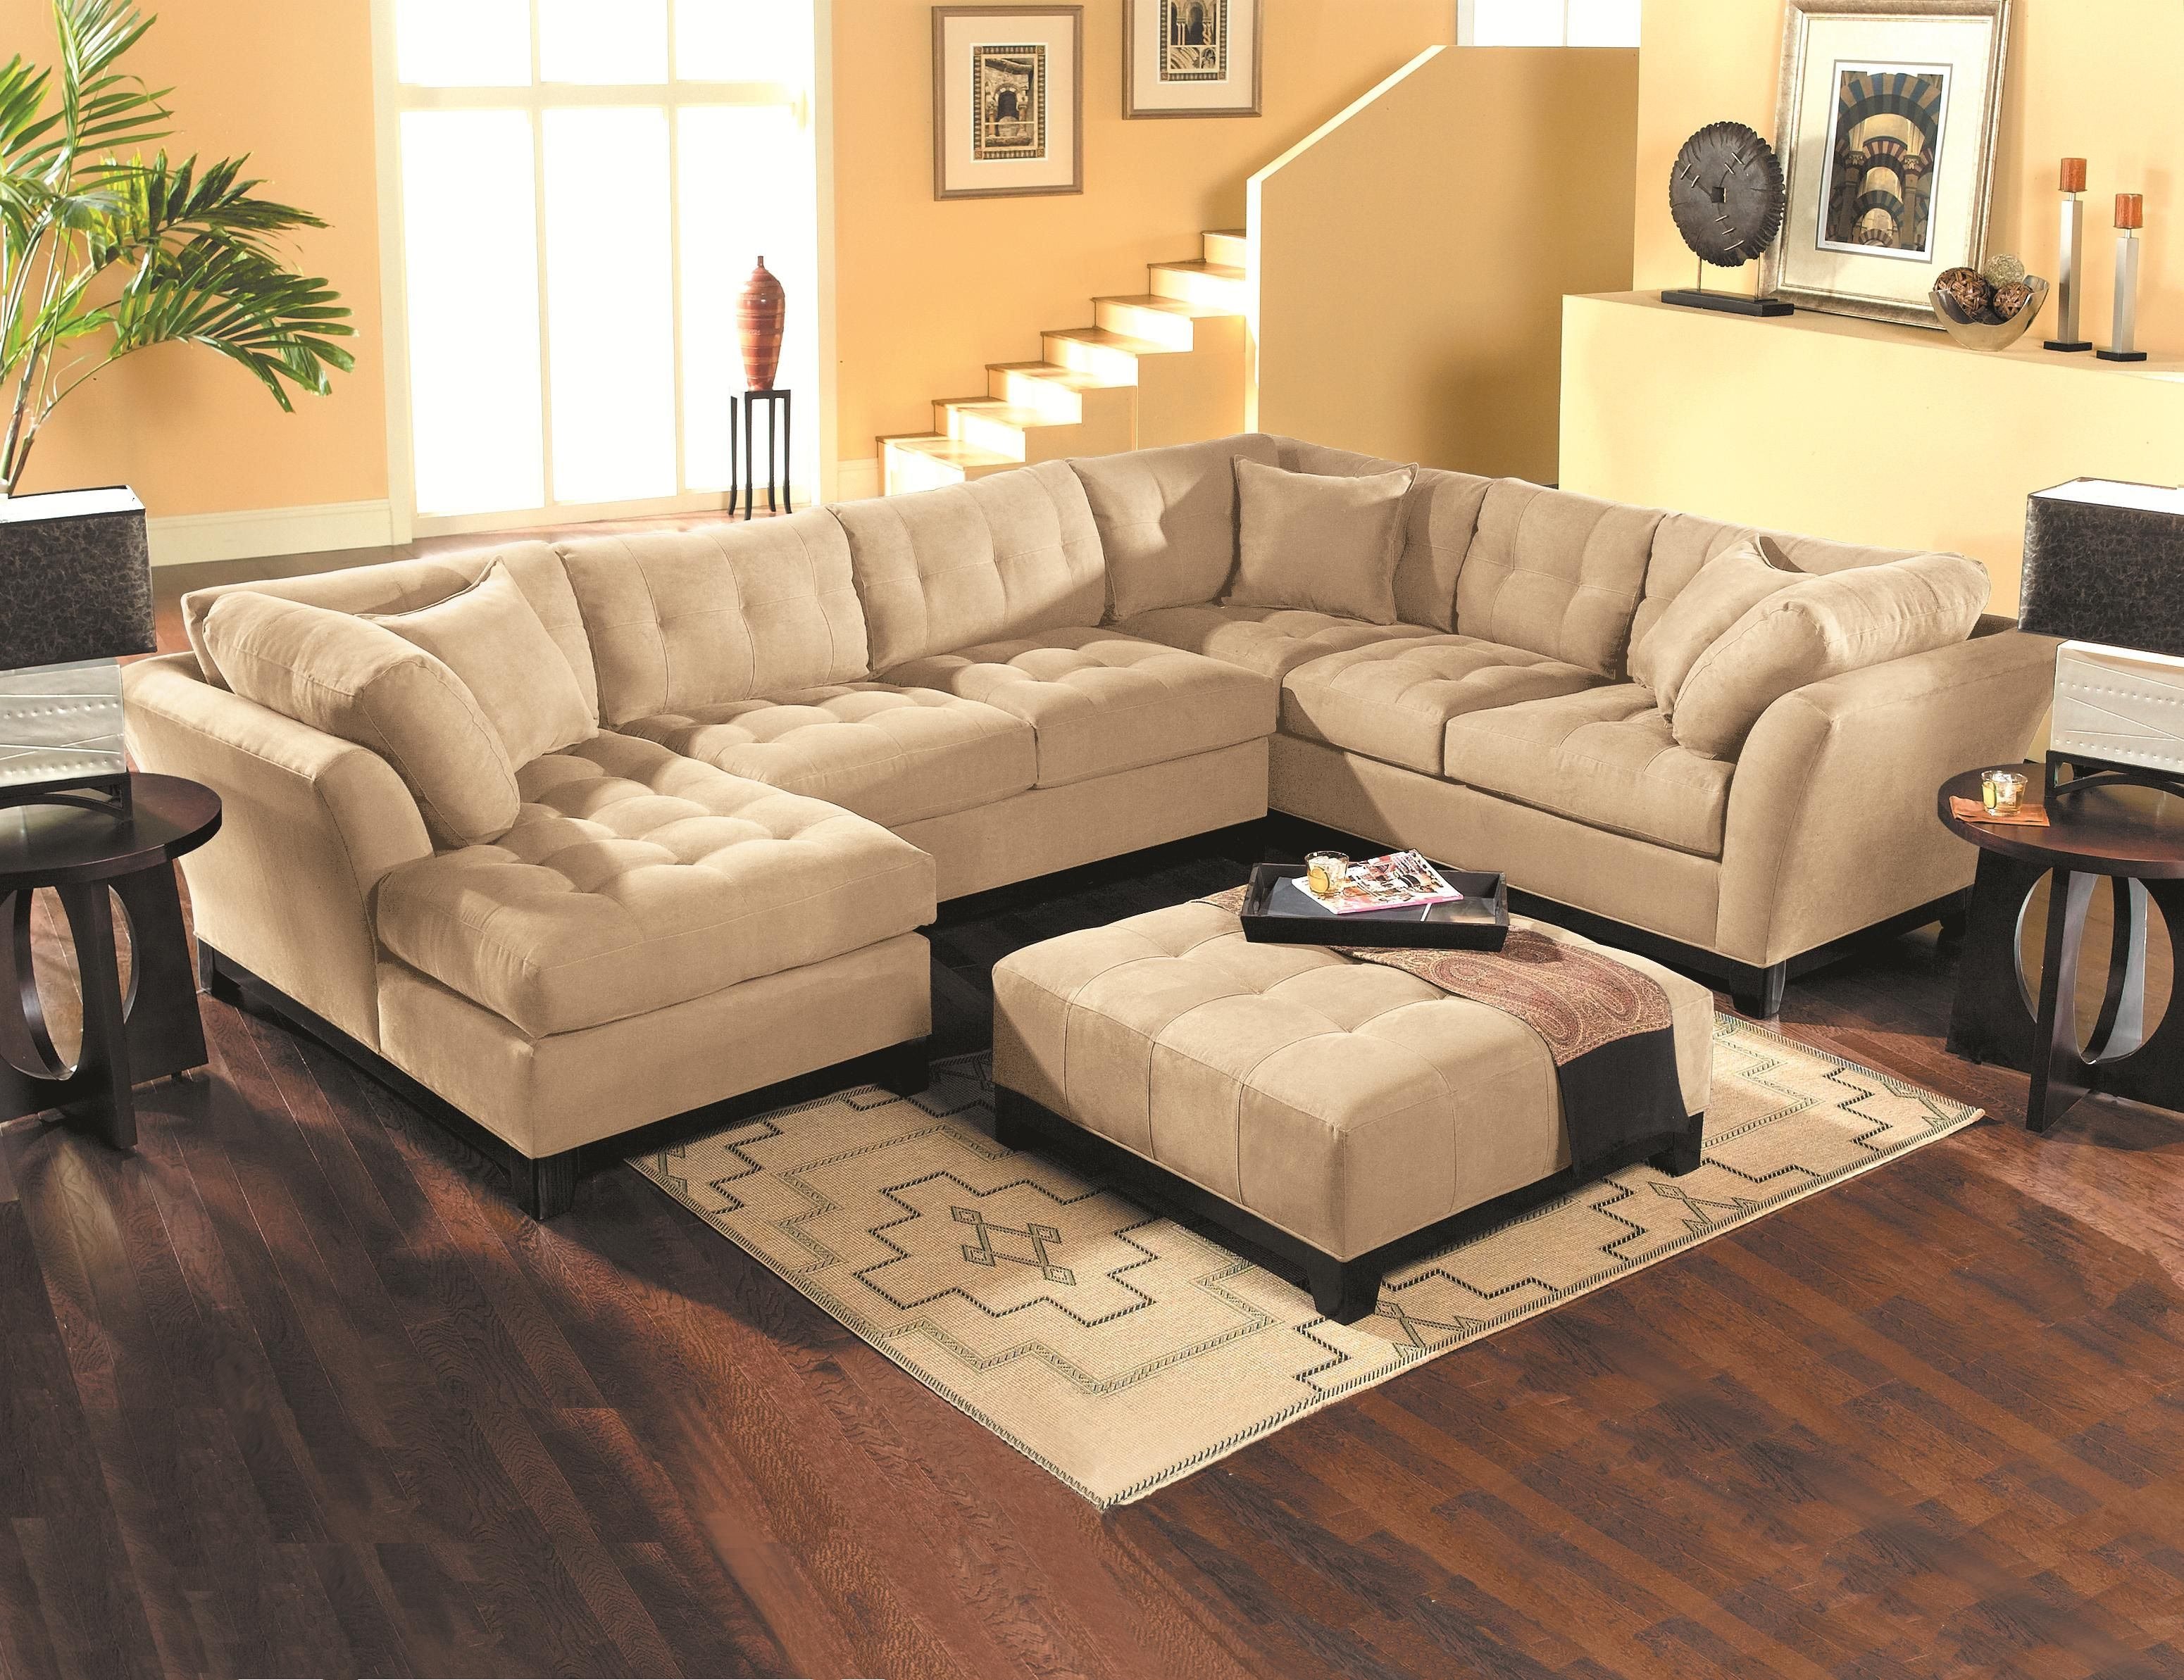 Metropolis Contemporary Sectional Sofa By HM Richards